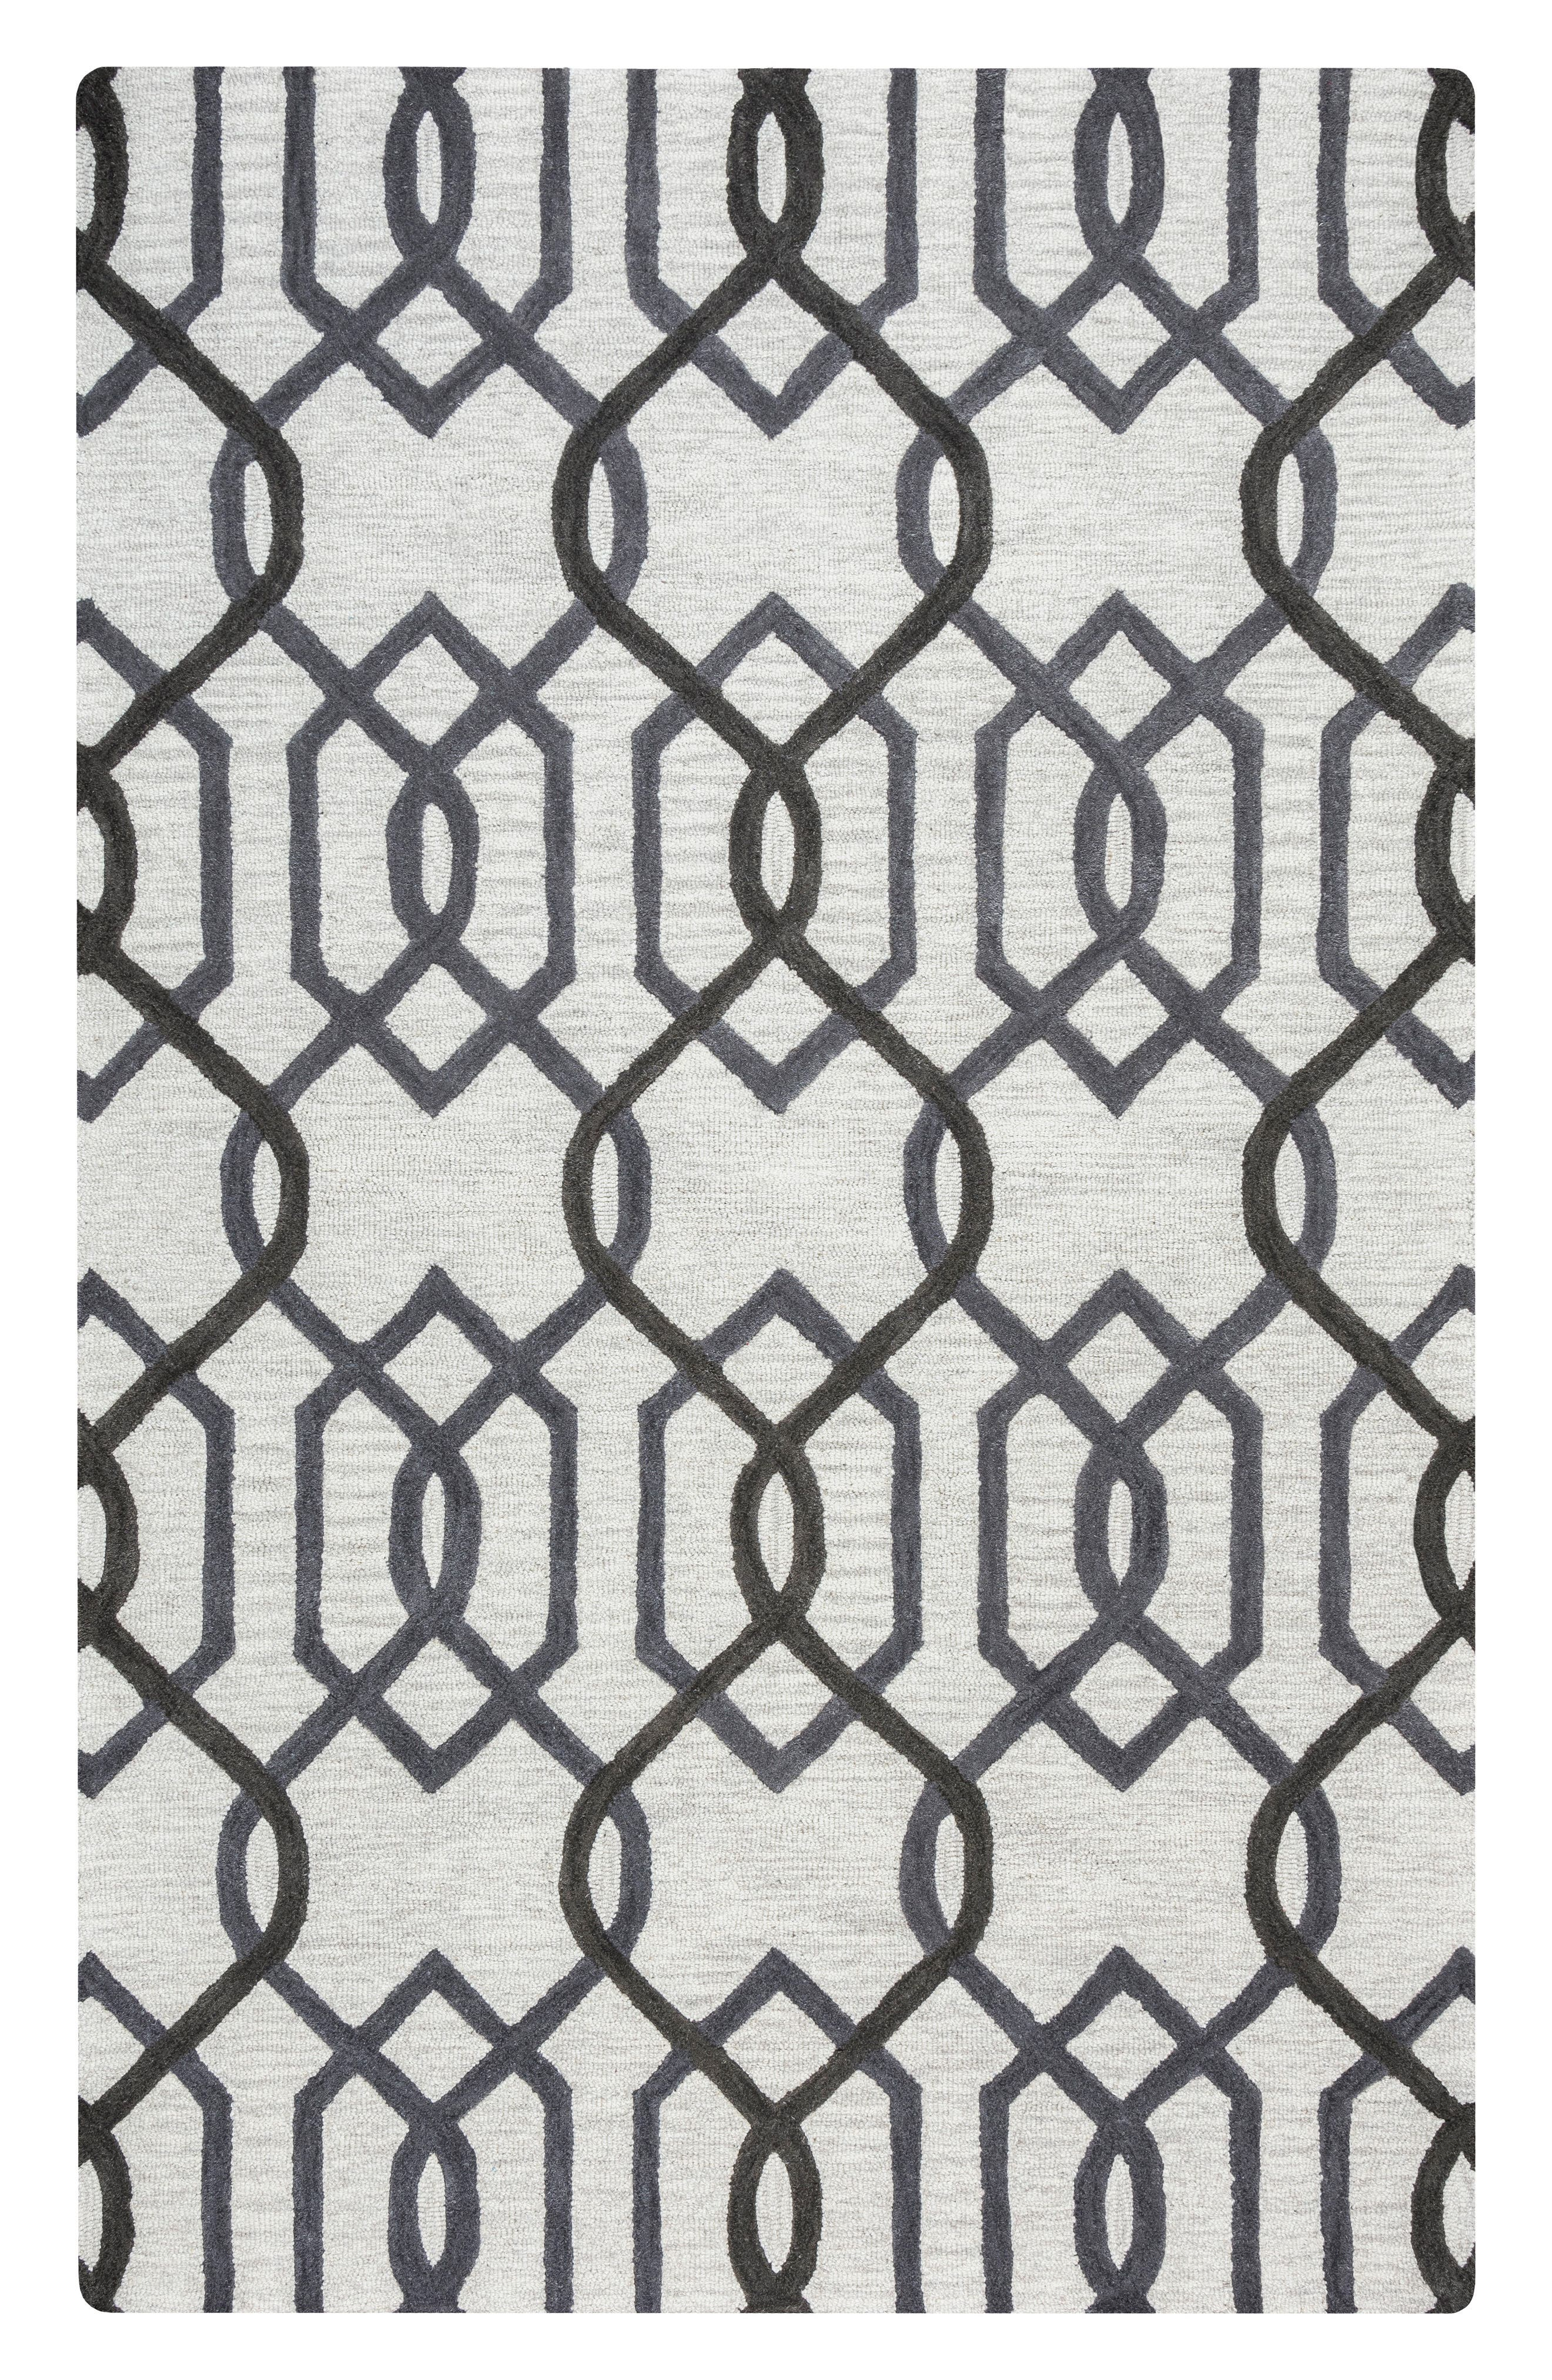 'Caterine Lines' Hand Tufted Wool Area Rug,                         Main,                         color, 020